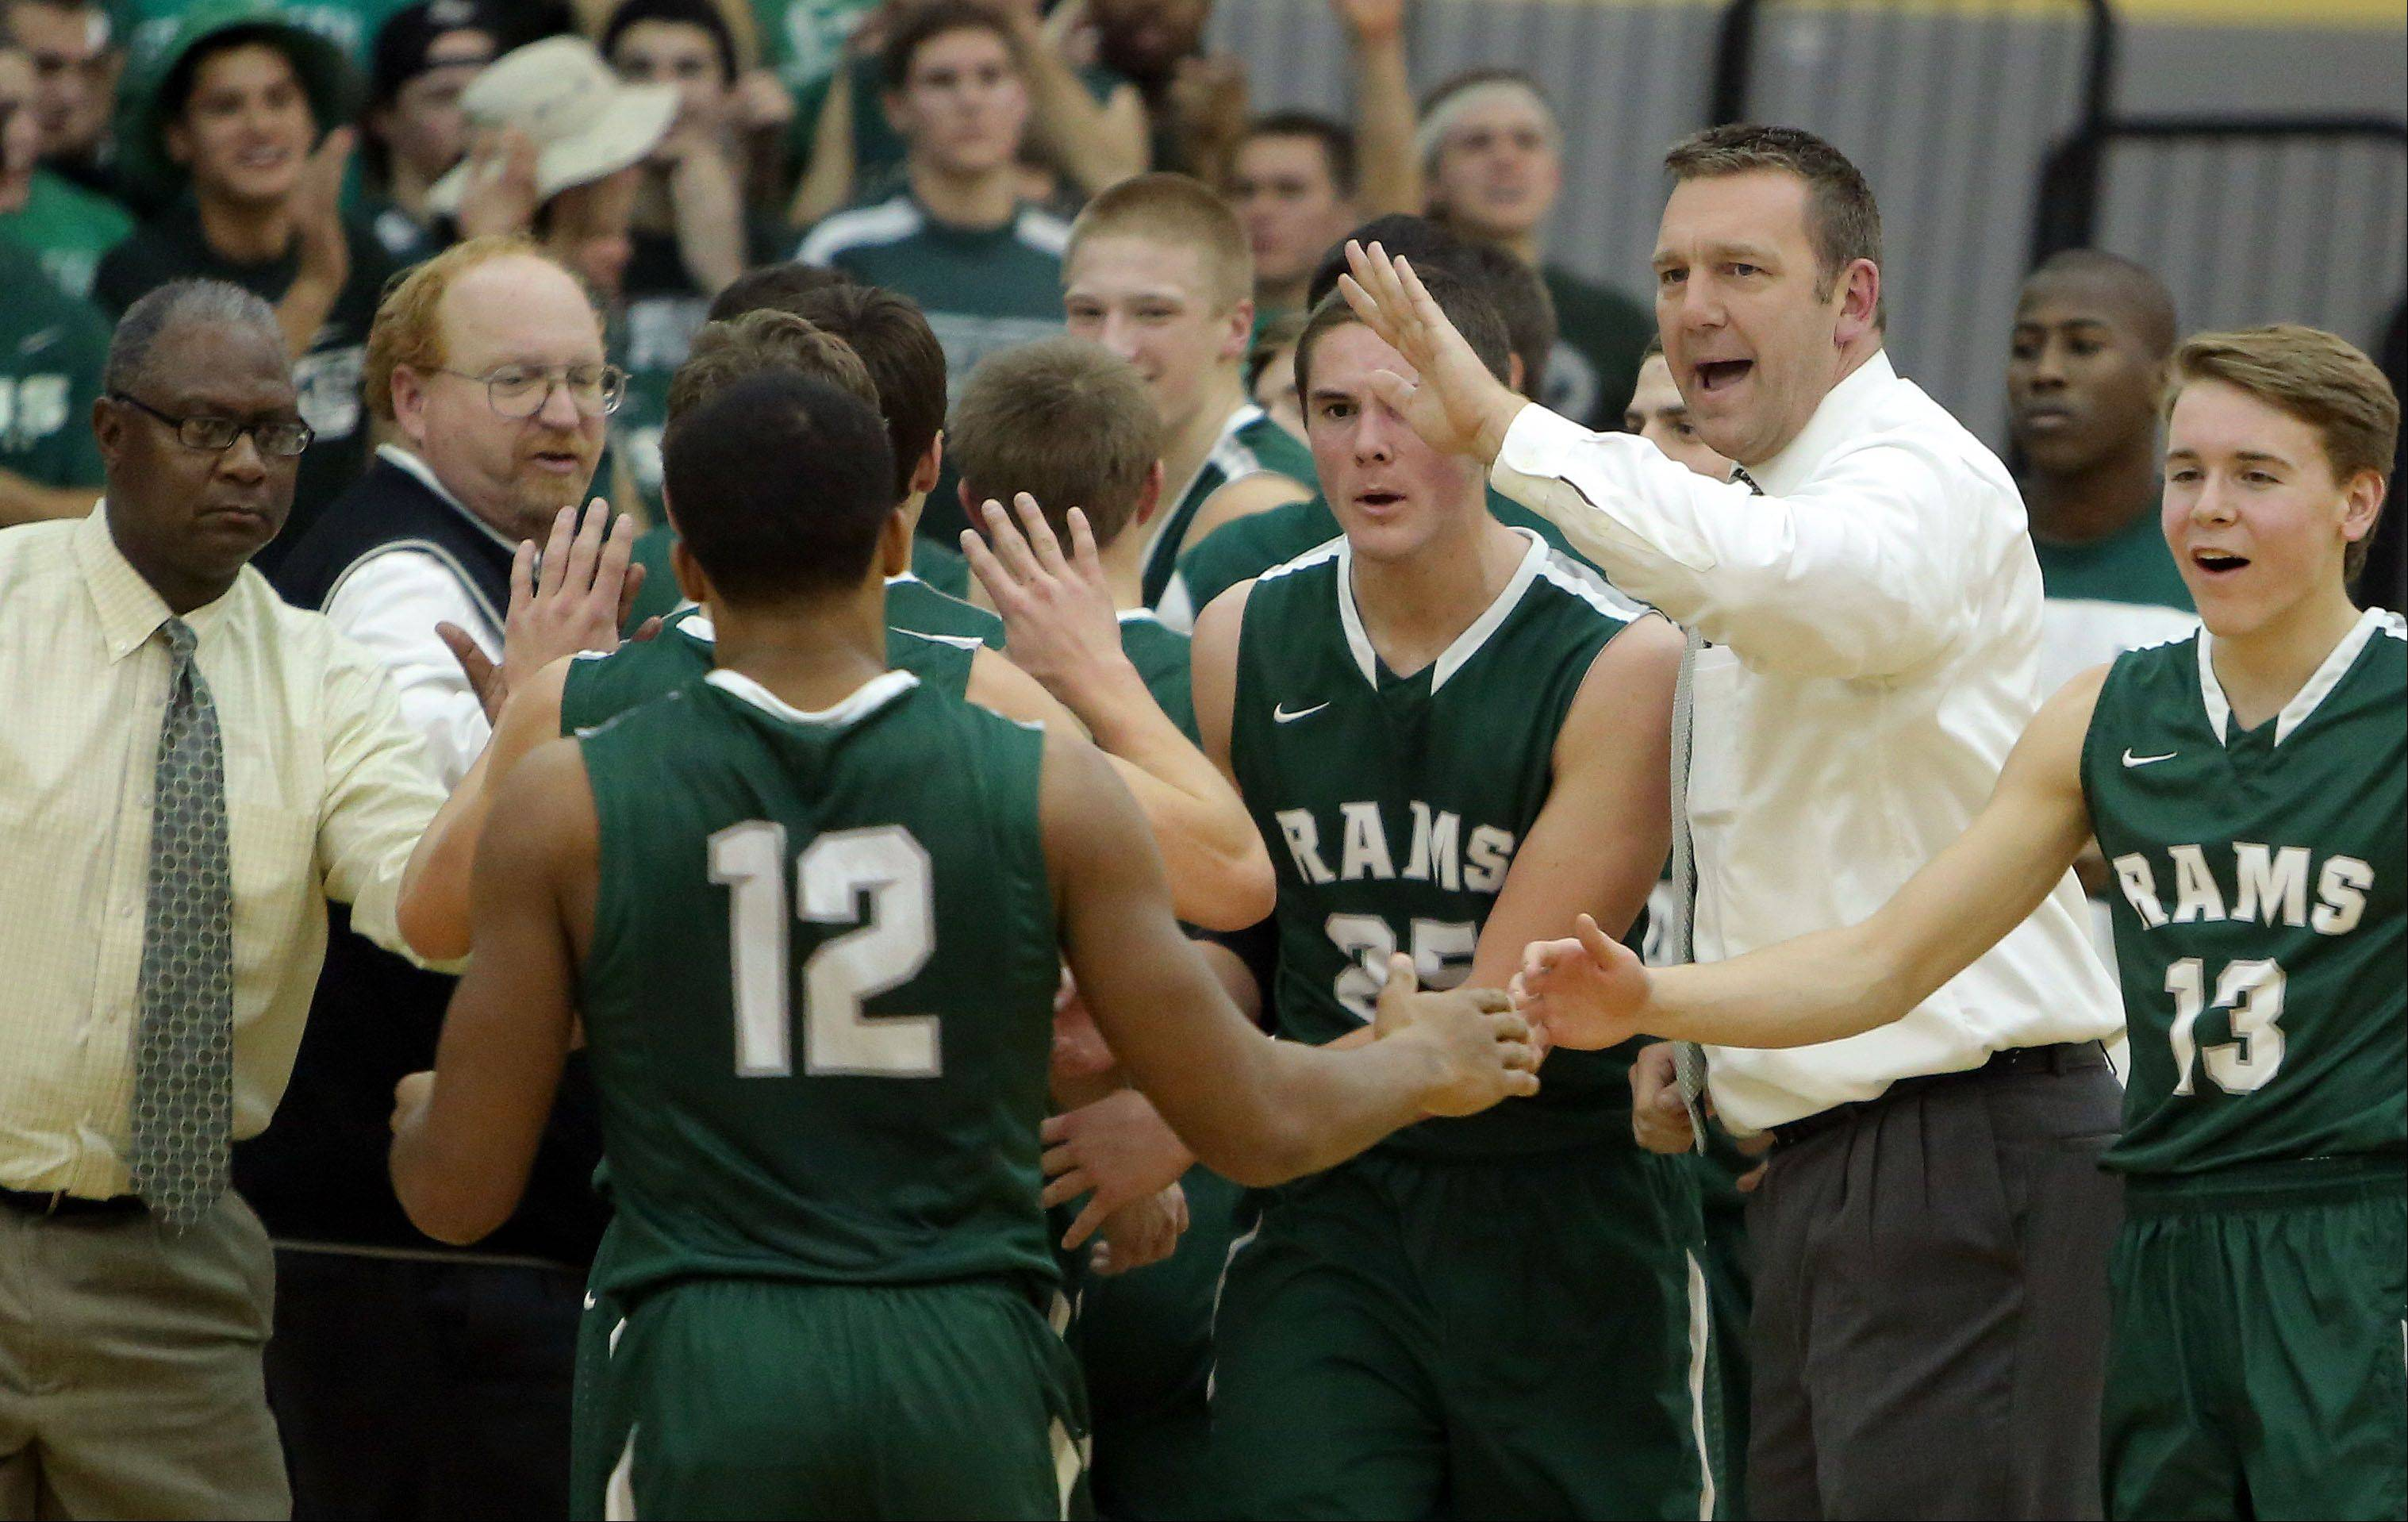 Grayslake Central coach Brian Moe, right, encourages his team during a timeout Friday night at Grayslake North.